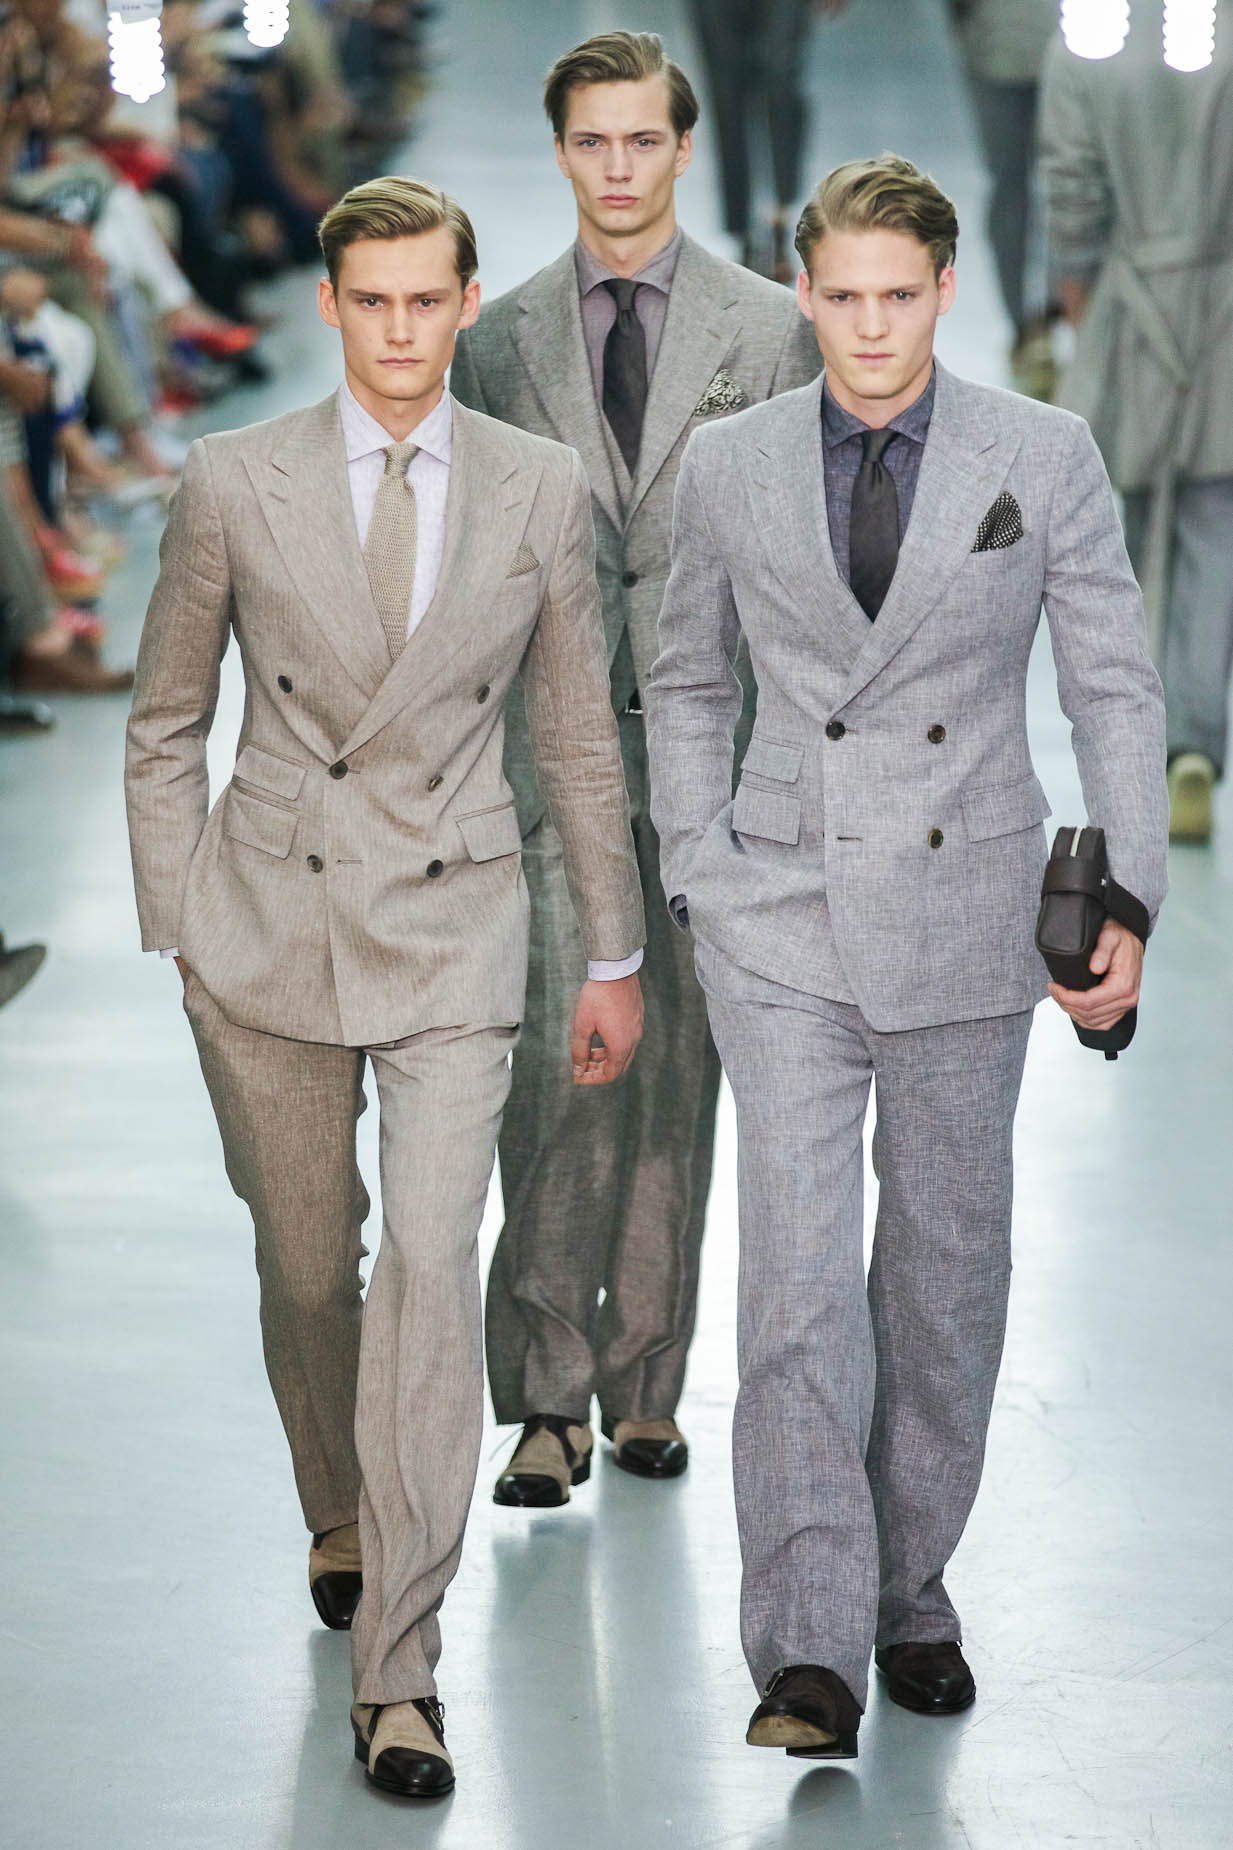 Summer 2013 Fashion Trends Suits